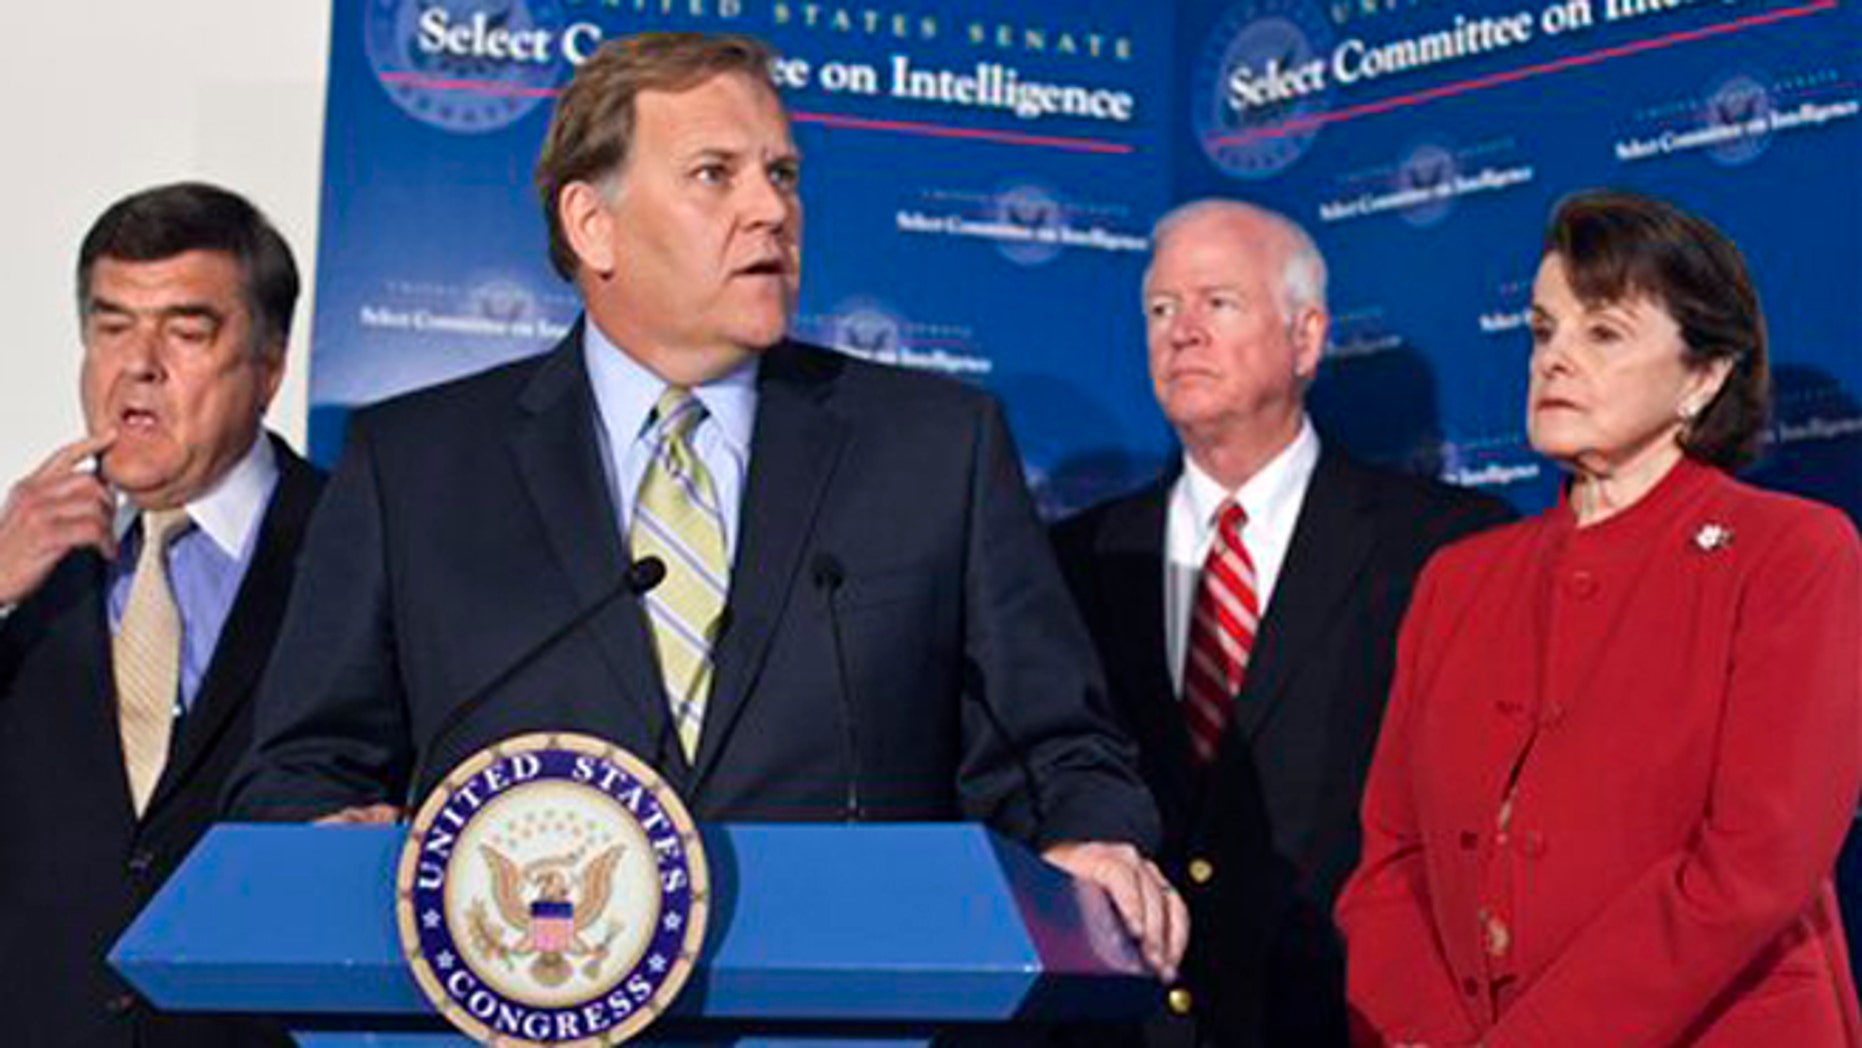 June 7, 2012: House and Senate Intelligence Committees. (L to R) Reps. C.A. Ruppersberger, and Mike Rogers; Sens. Saxby Chambliss and Dianne Feinstein.